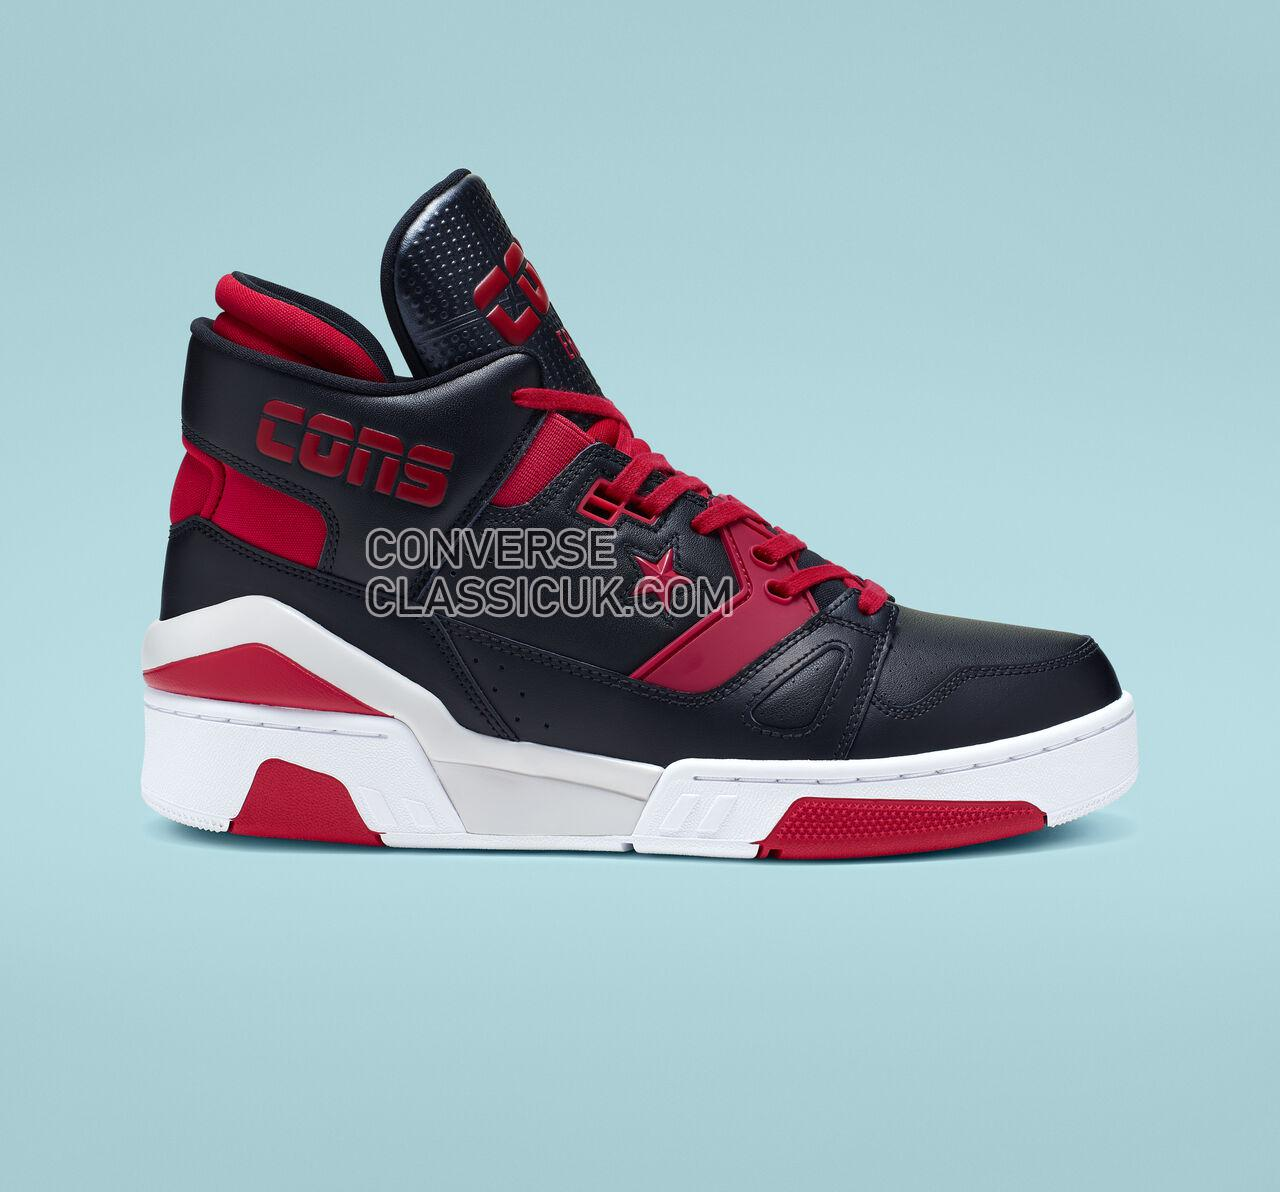 Converse ERX 260 Mid Mens Womens Unisex 163852C Black/Enamel Red/White Shoes